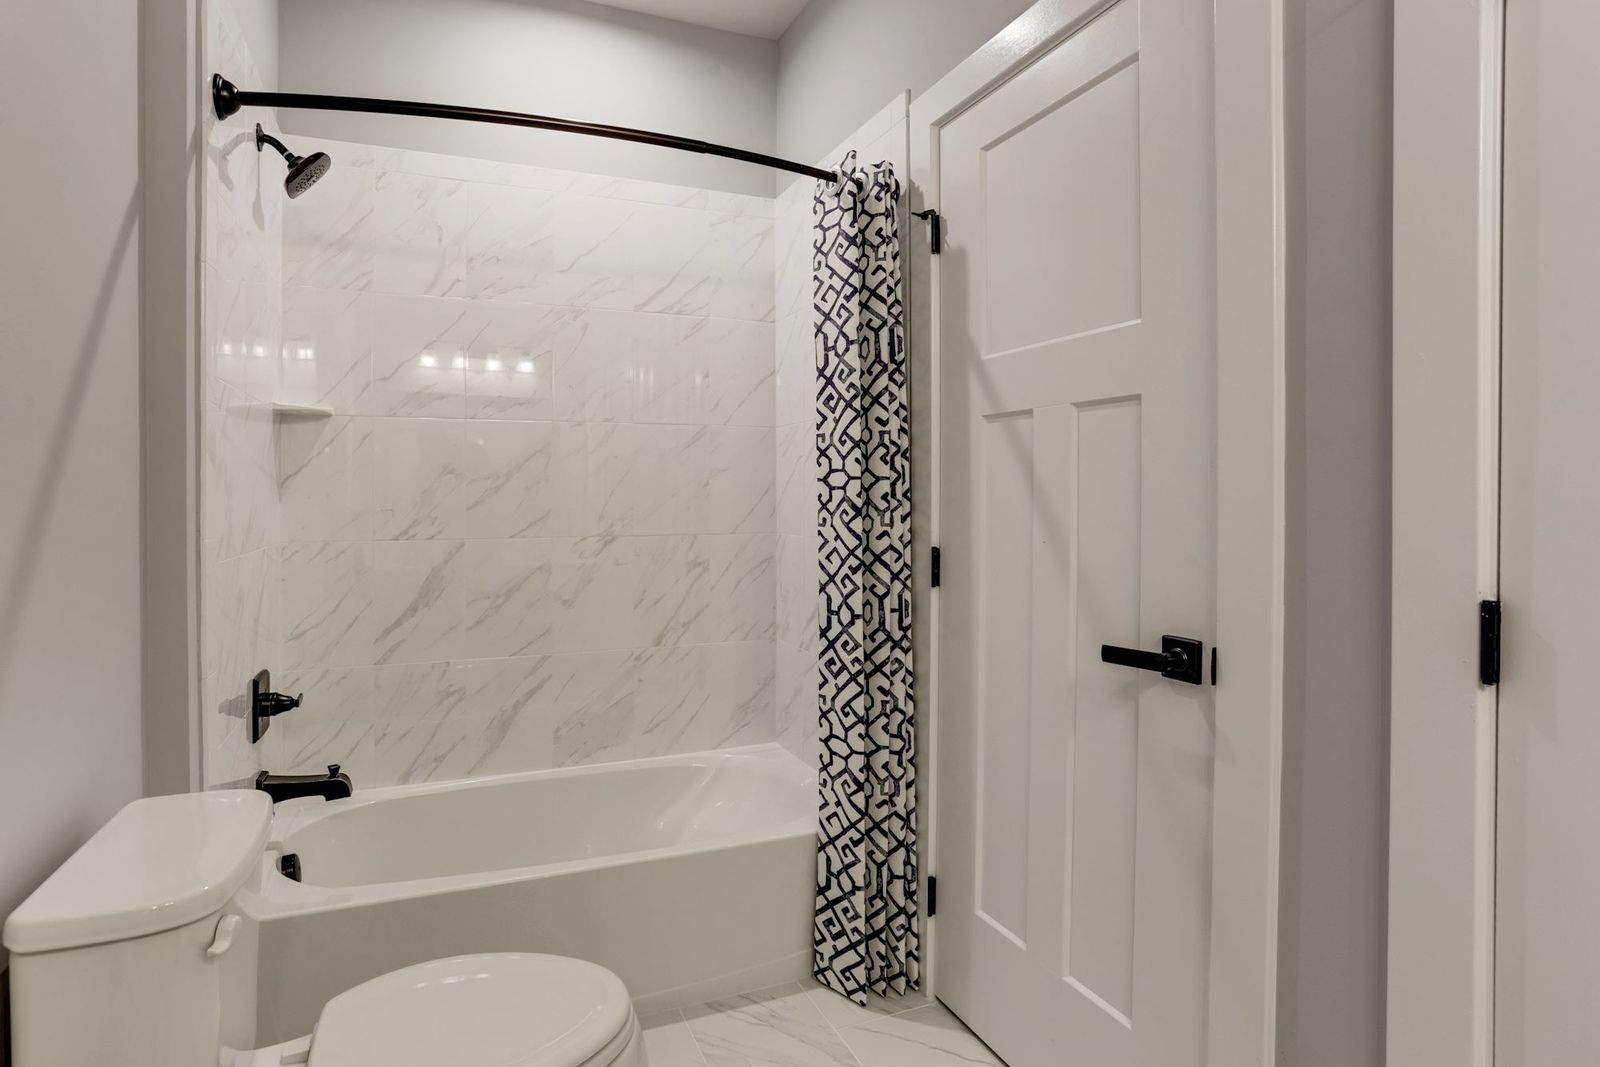 Bathroom featured in the Palladio 2 Story By Ryan Homes in Sussex, DE